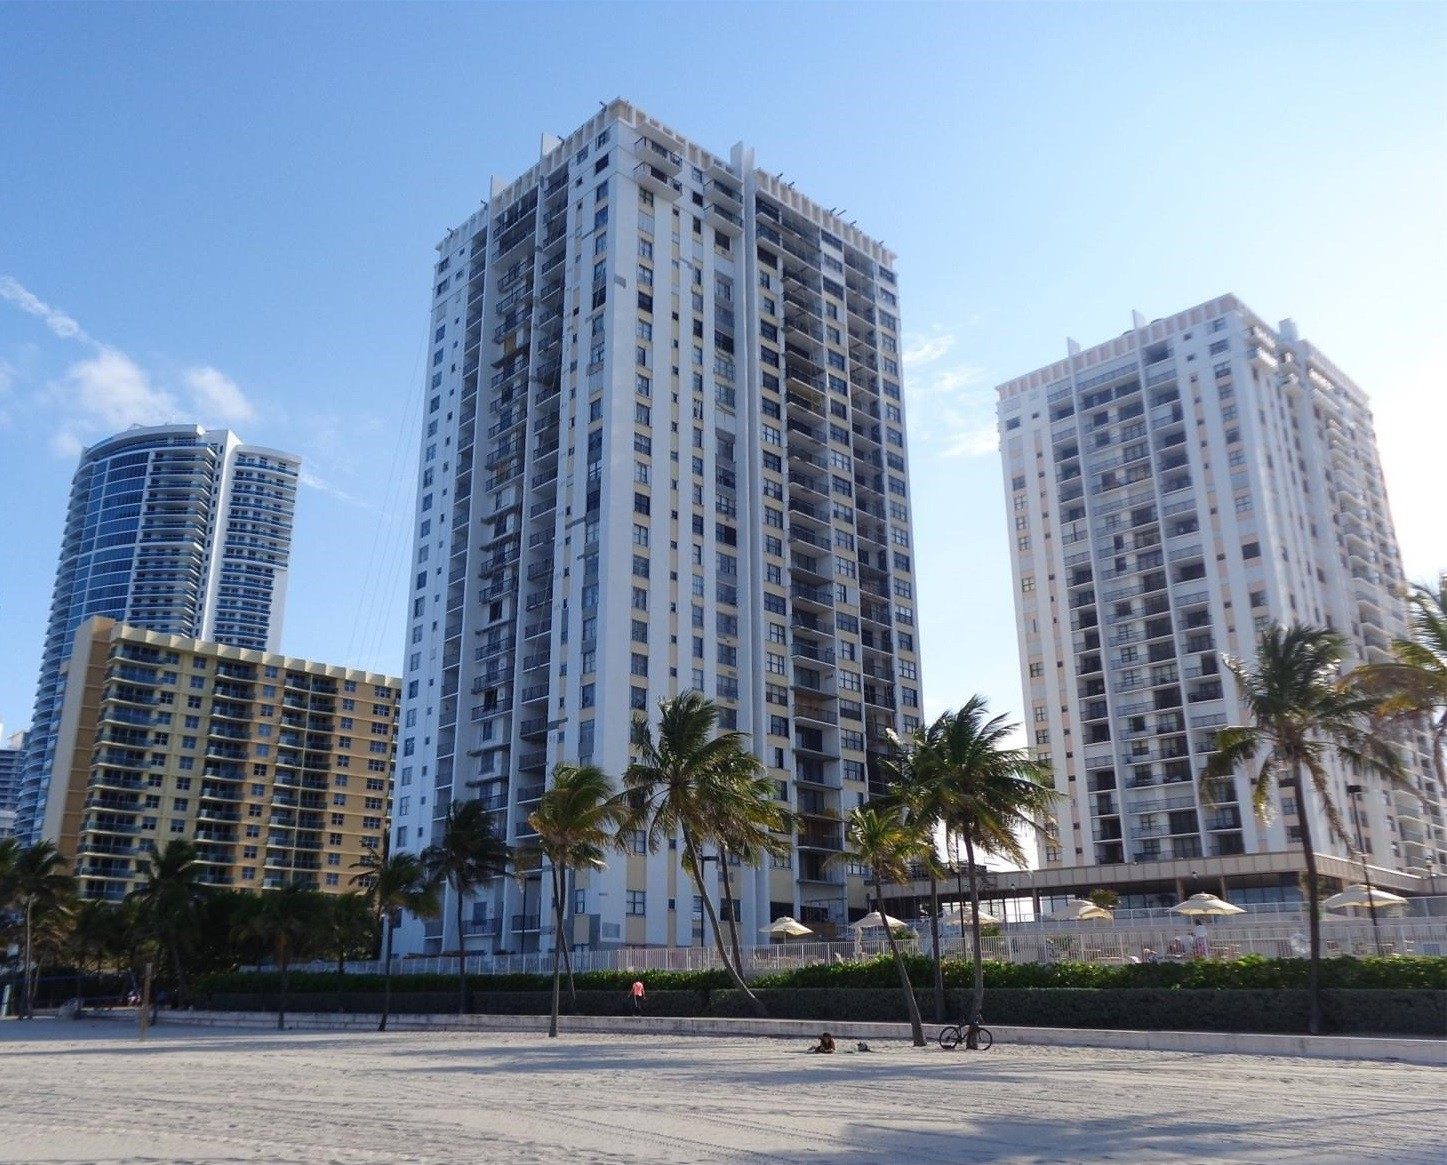 Quadomain Condos for Sale and Rent 2201 S Ocean DriveHollywood Beach, FL 33019